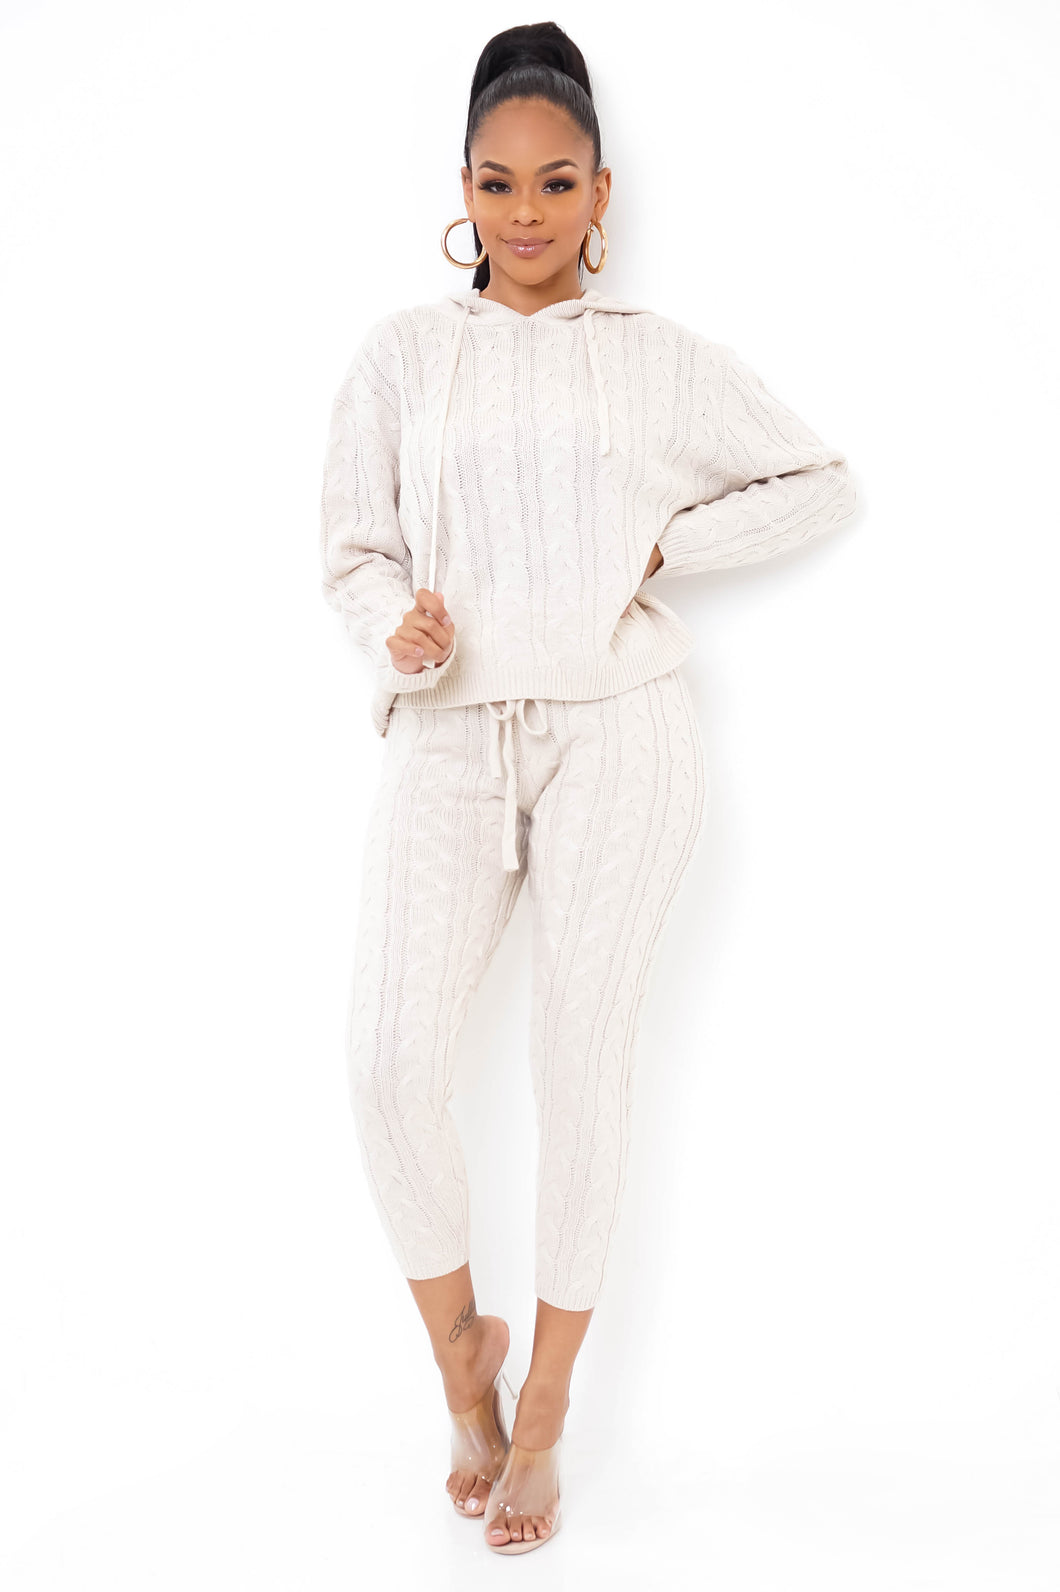 It's Chilly Two Piece Pant Set - Beige